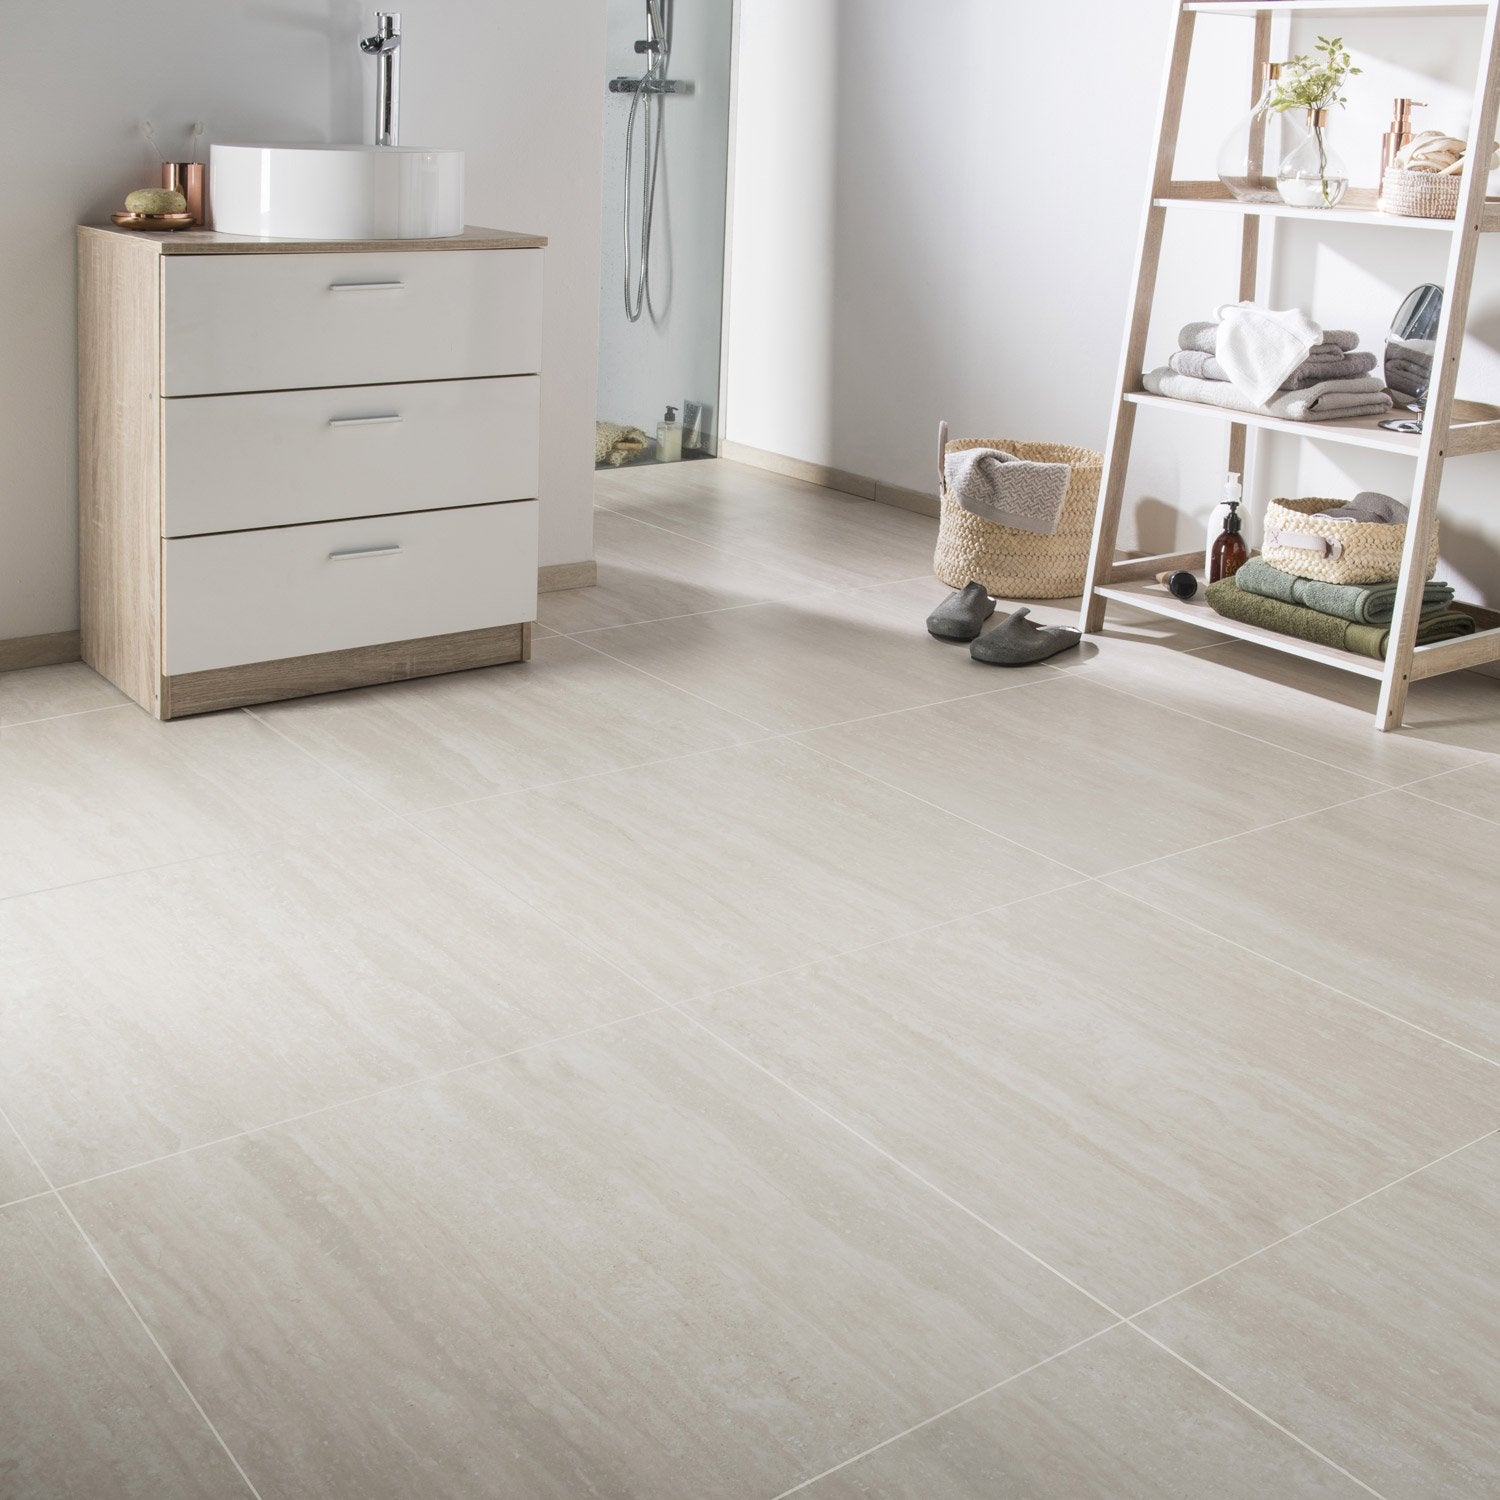 carrelage travertin leroy merlin